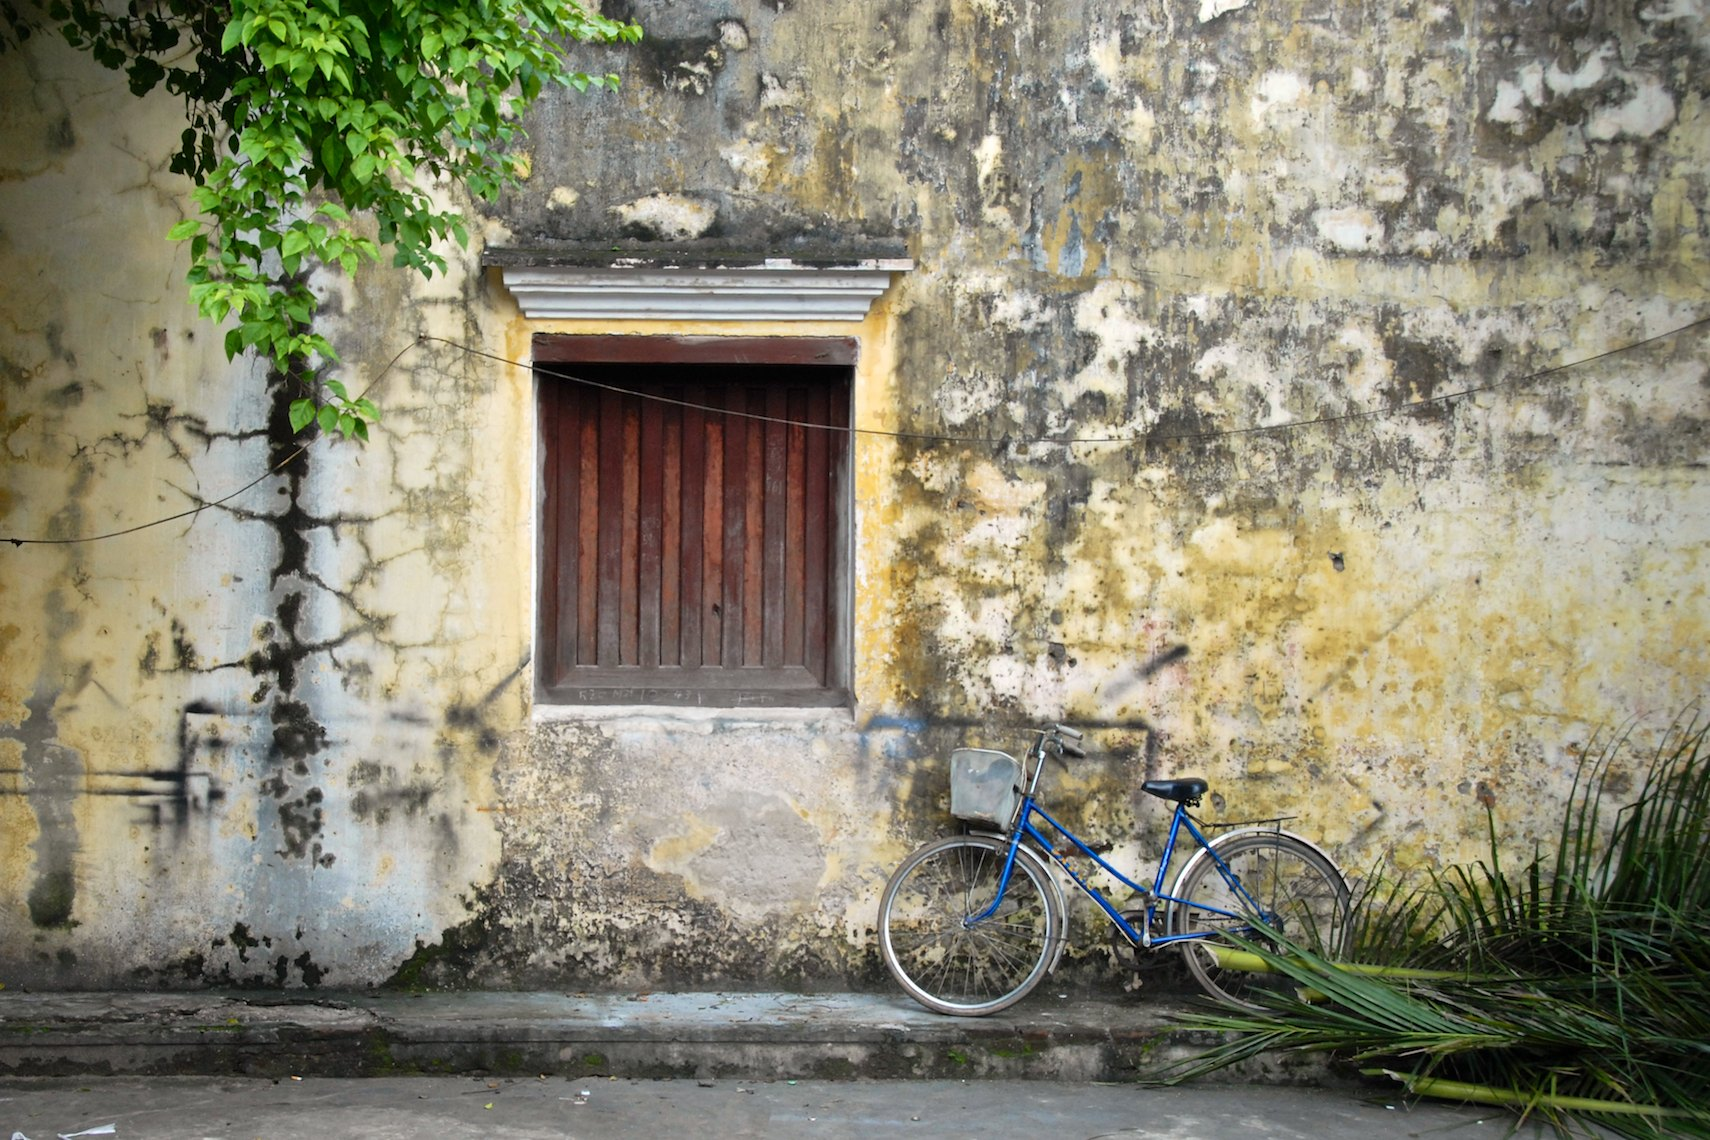 Barth_Vietnam_bicycle 009.jpg